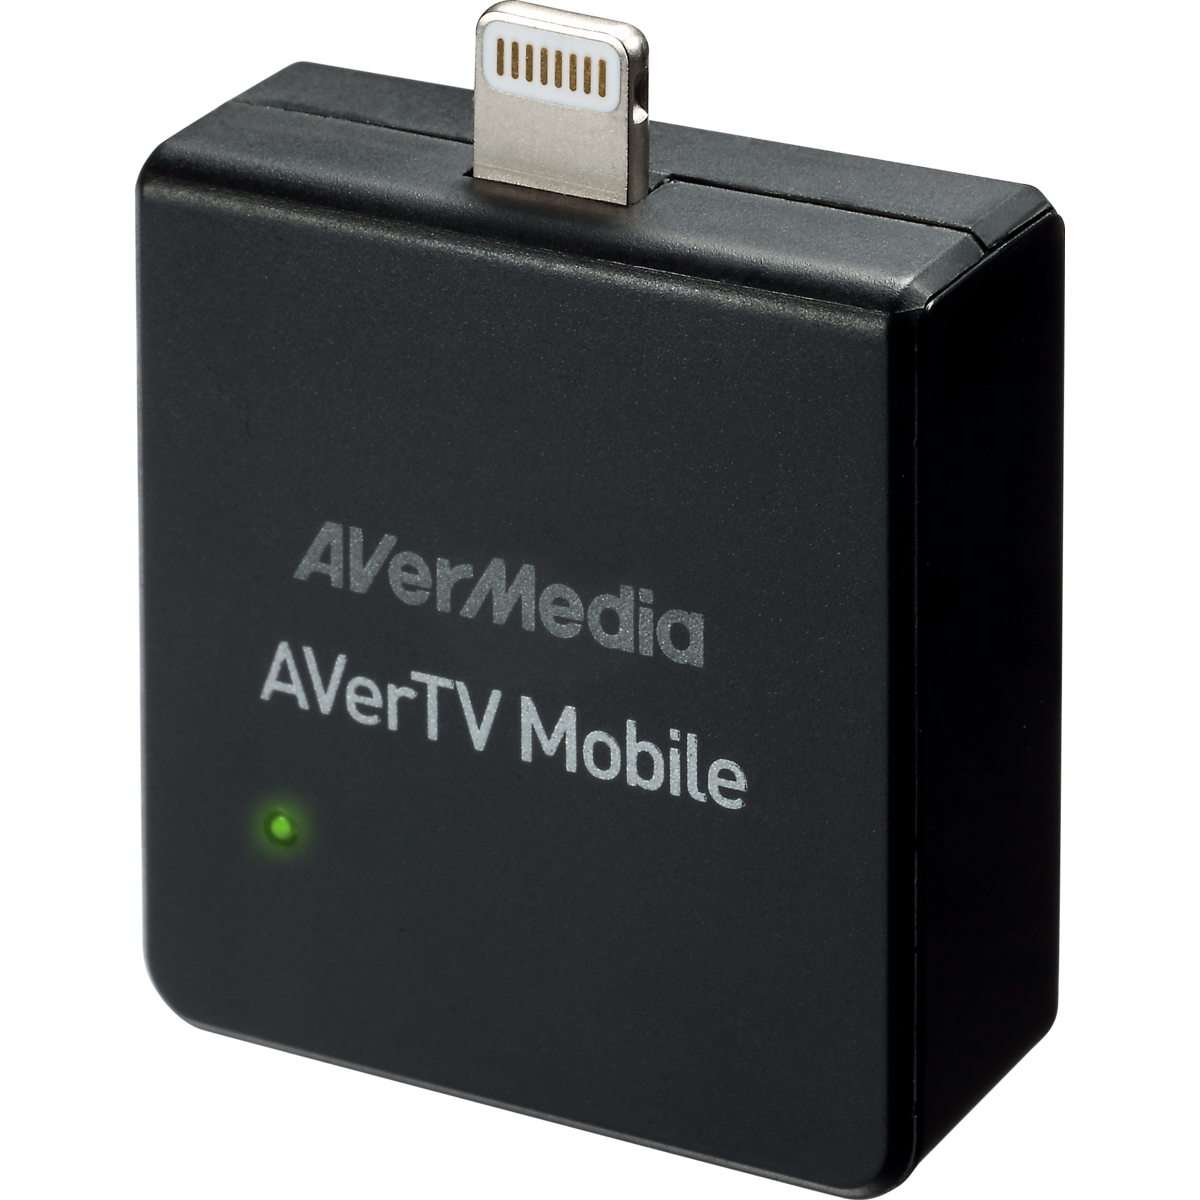 Avermedia Avermedia Avertv Mobile 330 For Ios  No Internet Connection Required